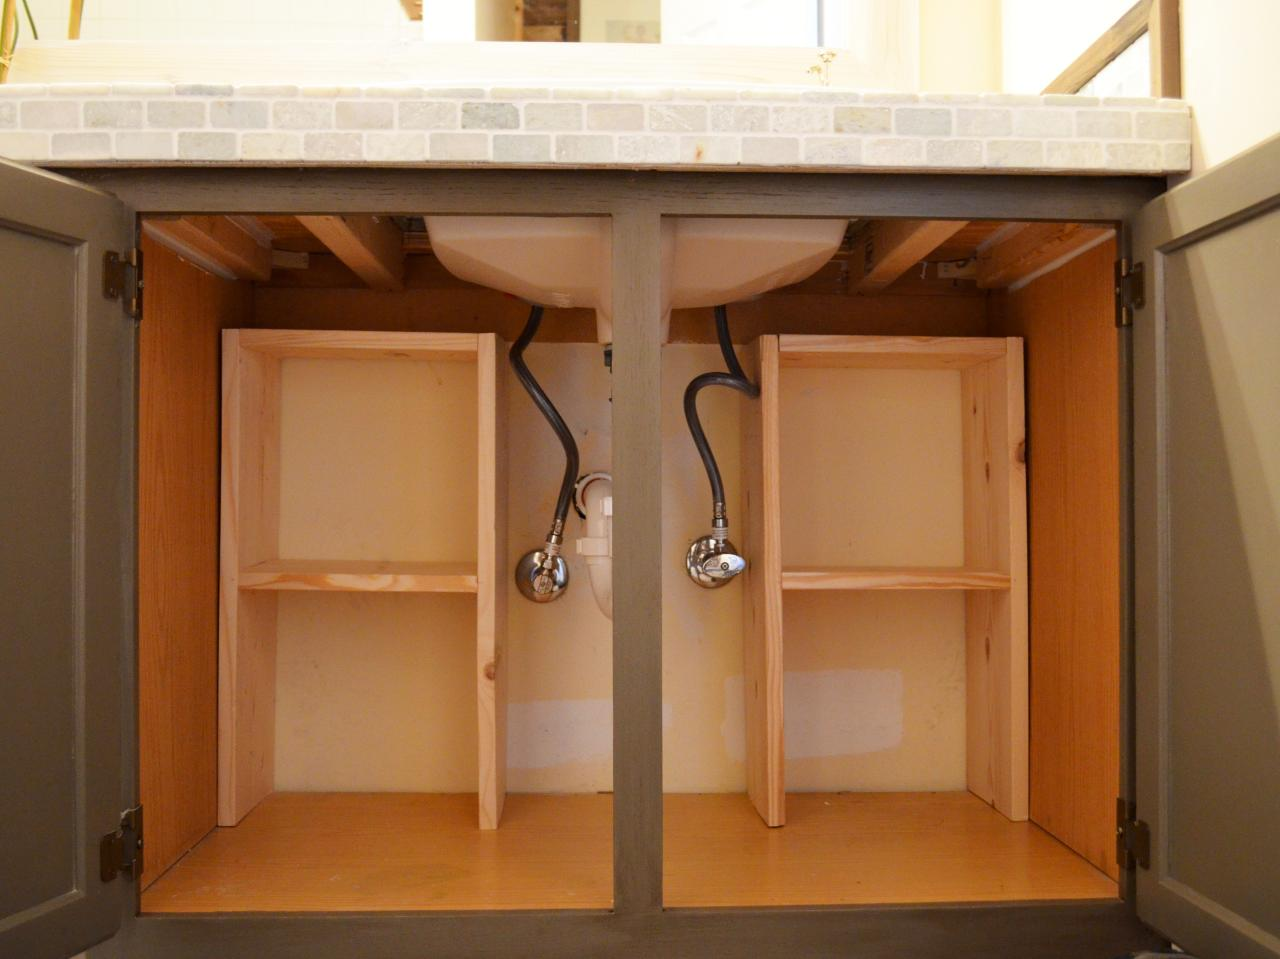 A step by step guide for creating storage under the sink Diy under counter storage